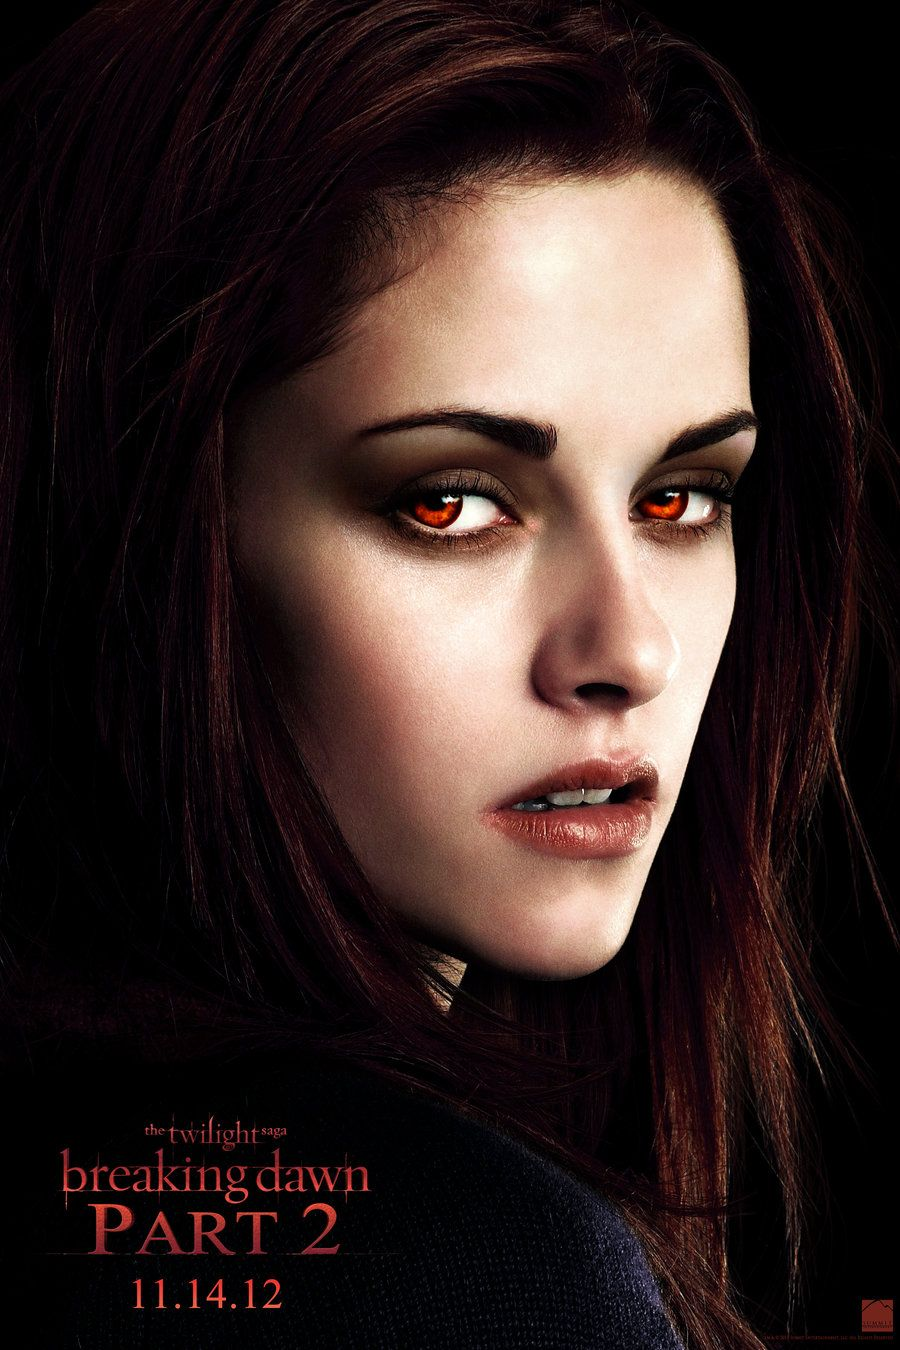 Twilight Saga Breaking Dawn Part 2 Teaser Poster By Andrewss7